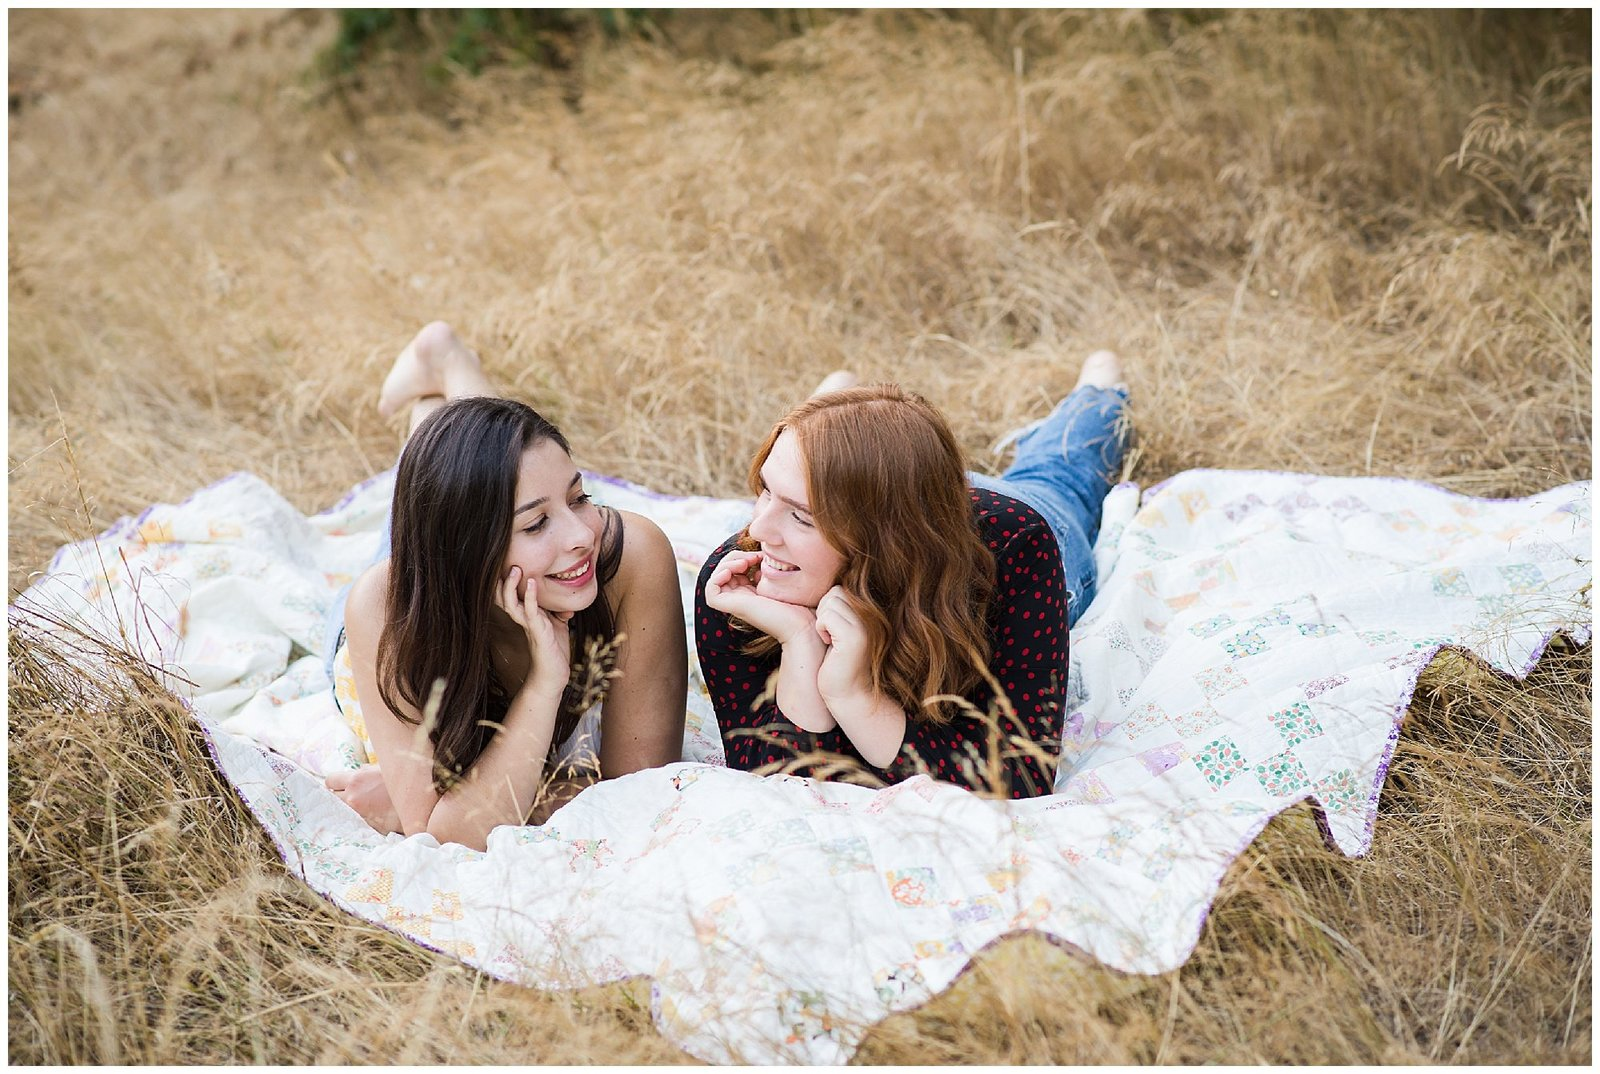 Senior Graduation Girlfriends in Field on Blanket Emily Ann Photography Seattle Photographer